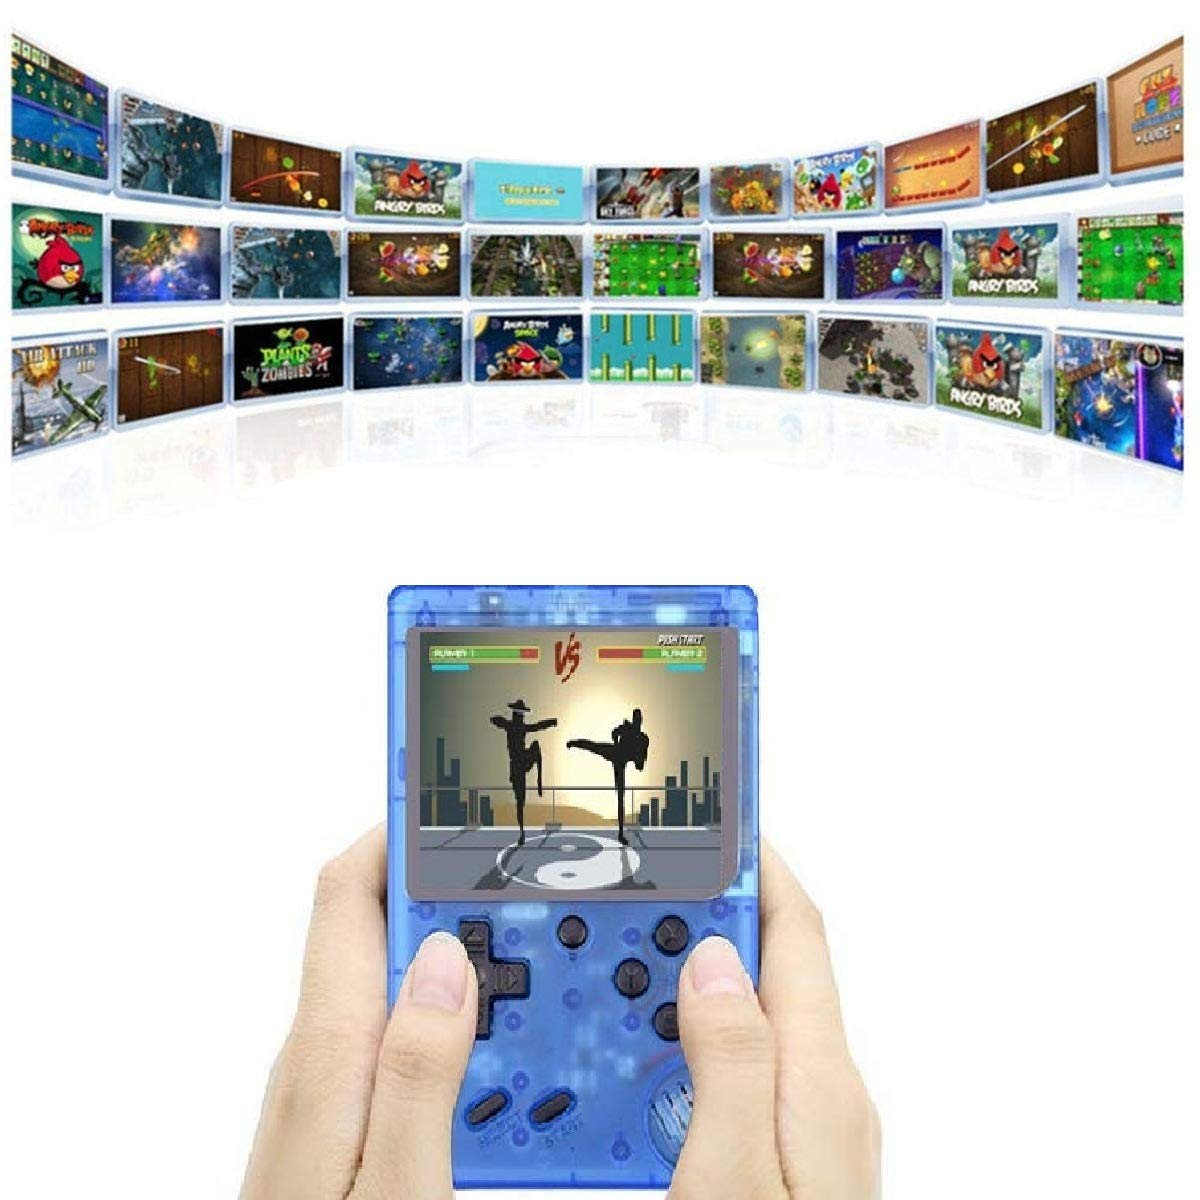 360 Retro Games Handheld Game Console, 2 Players, Classic Game Console, 3 Inch Screen USB Charger Supports TV, FC System Plus Extra Joystick Mini Controller, Gifts for Kids Children.(Blue) by Haberman (Image #2)